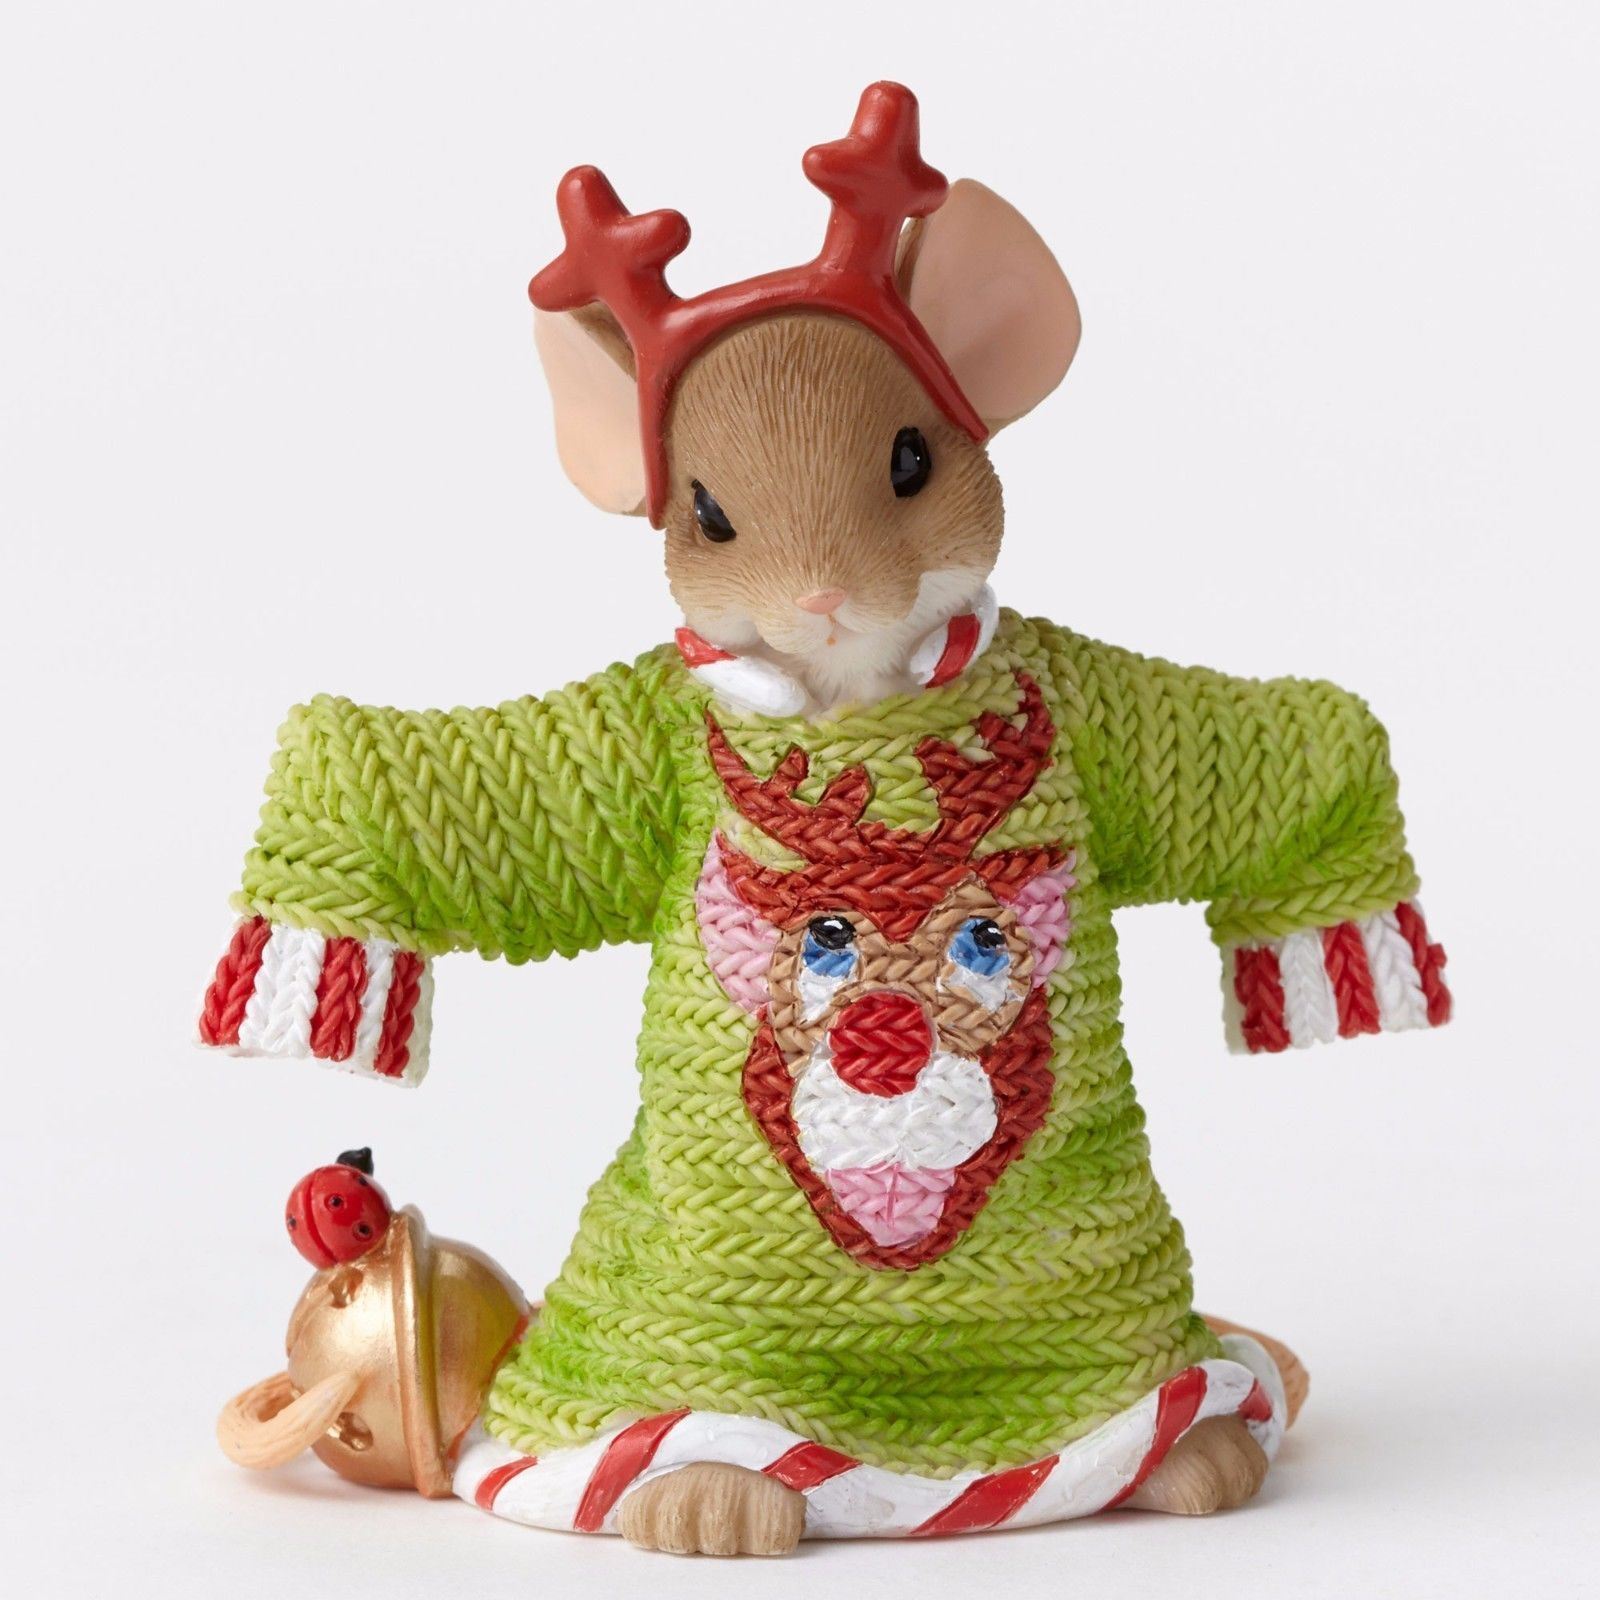 Charming Tails Such A Deer Ugly Green Sweater Mouse Figurine